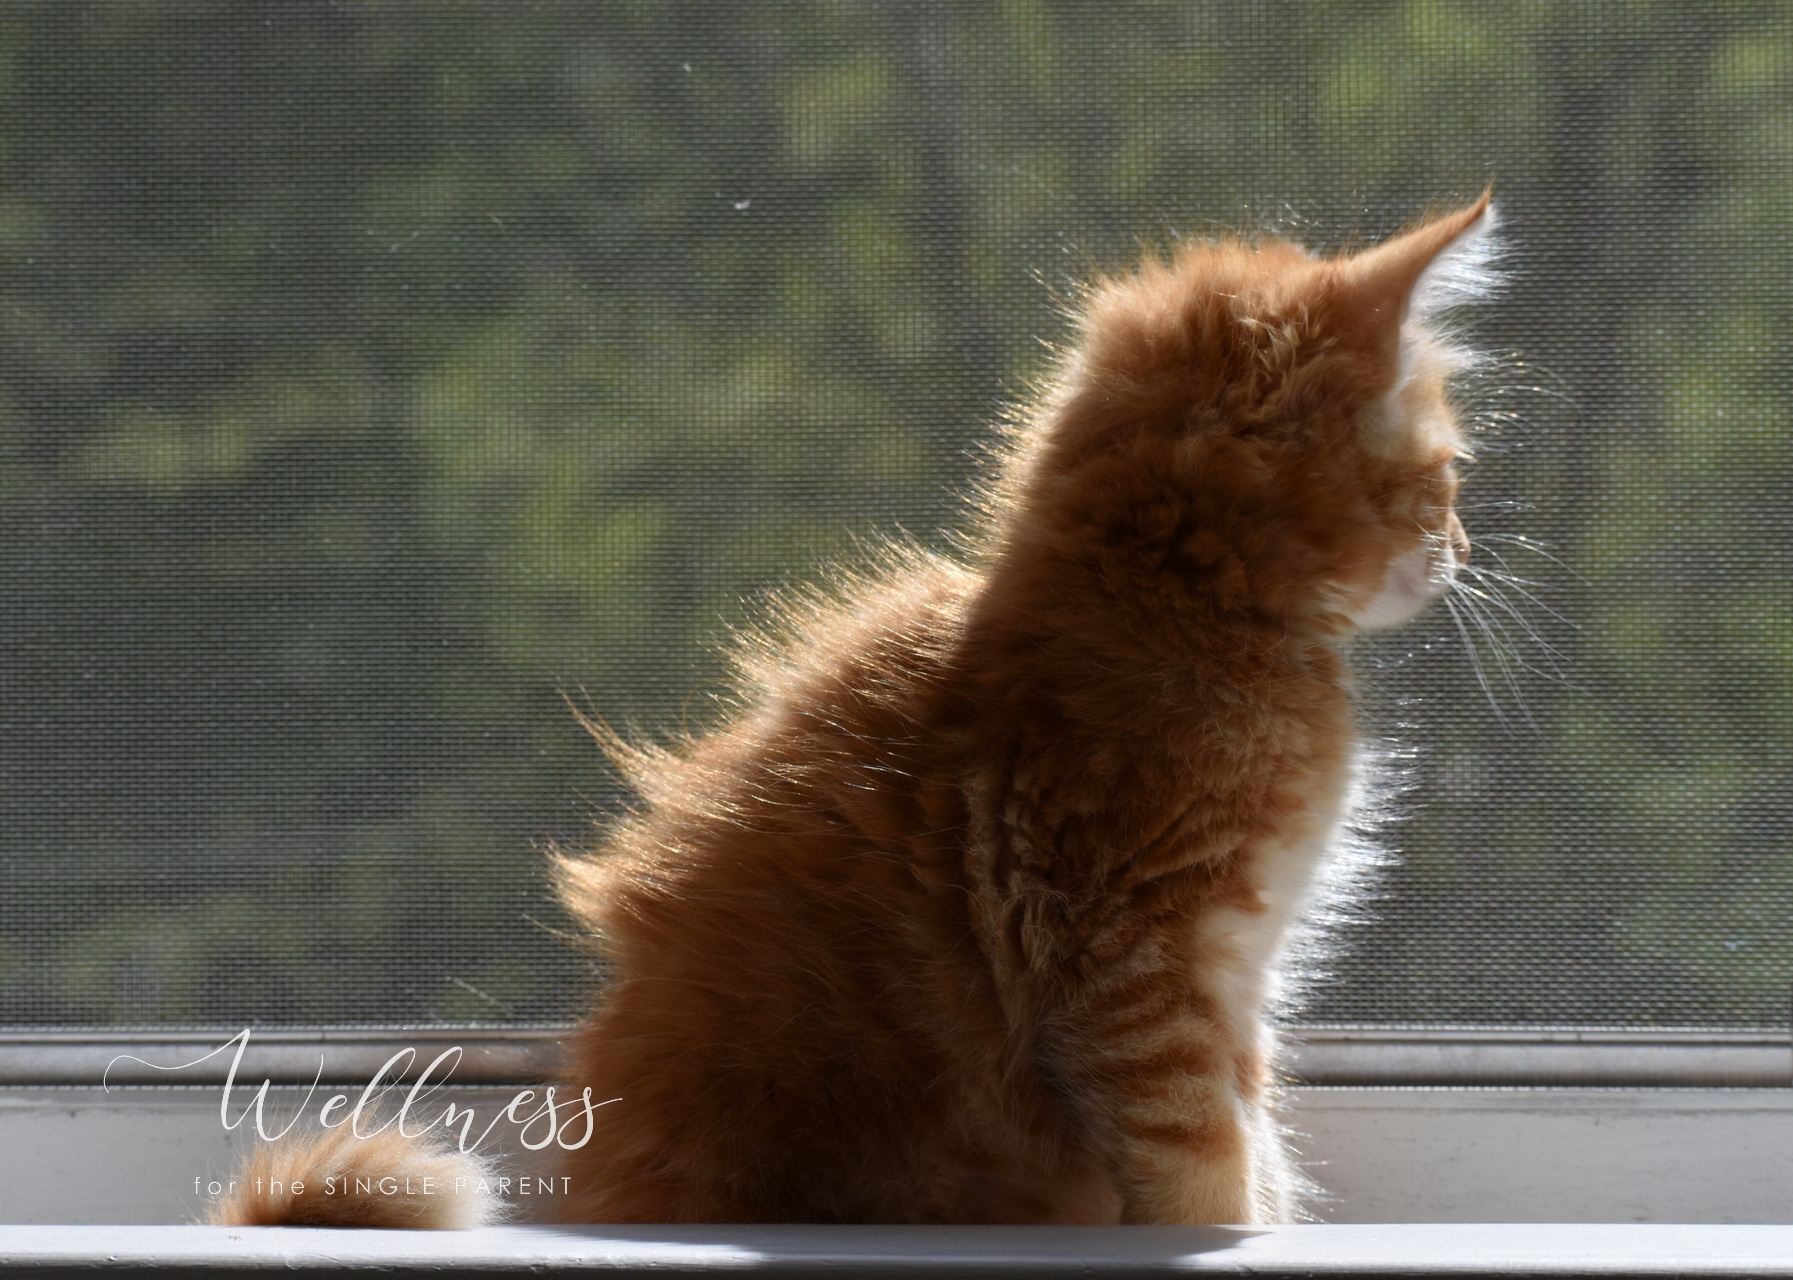 Back side of red and white kitten looking out window